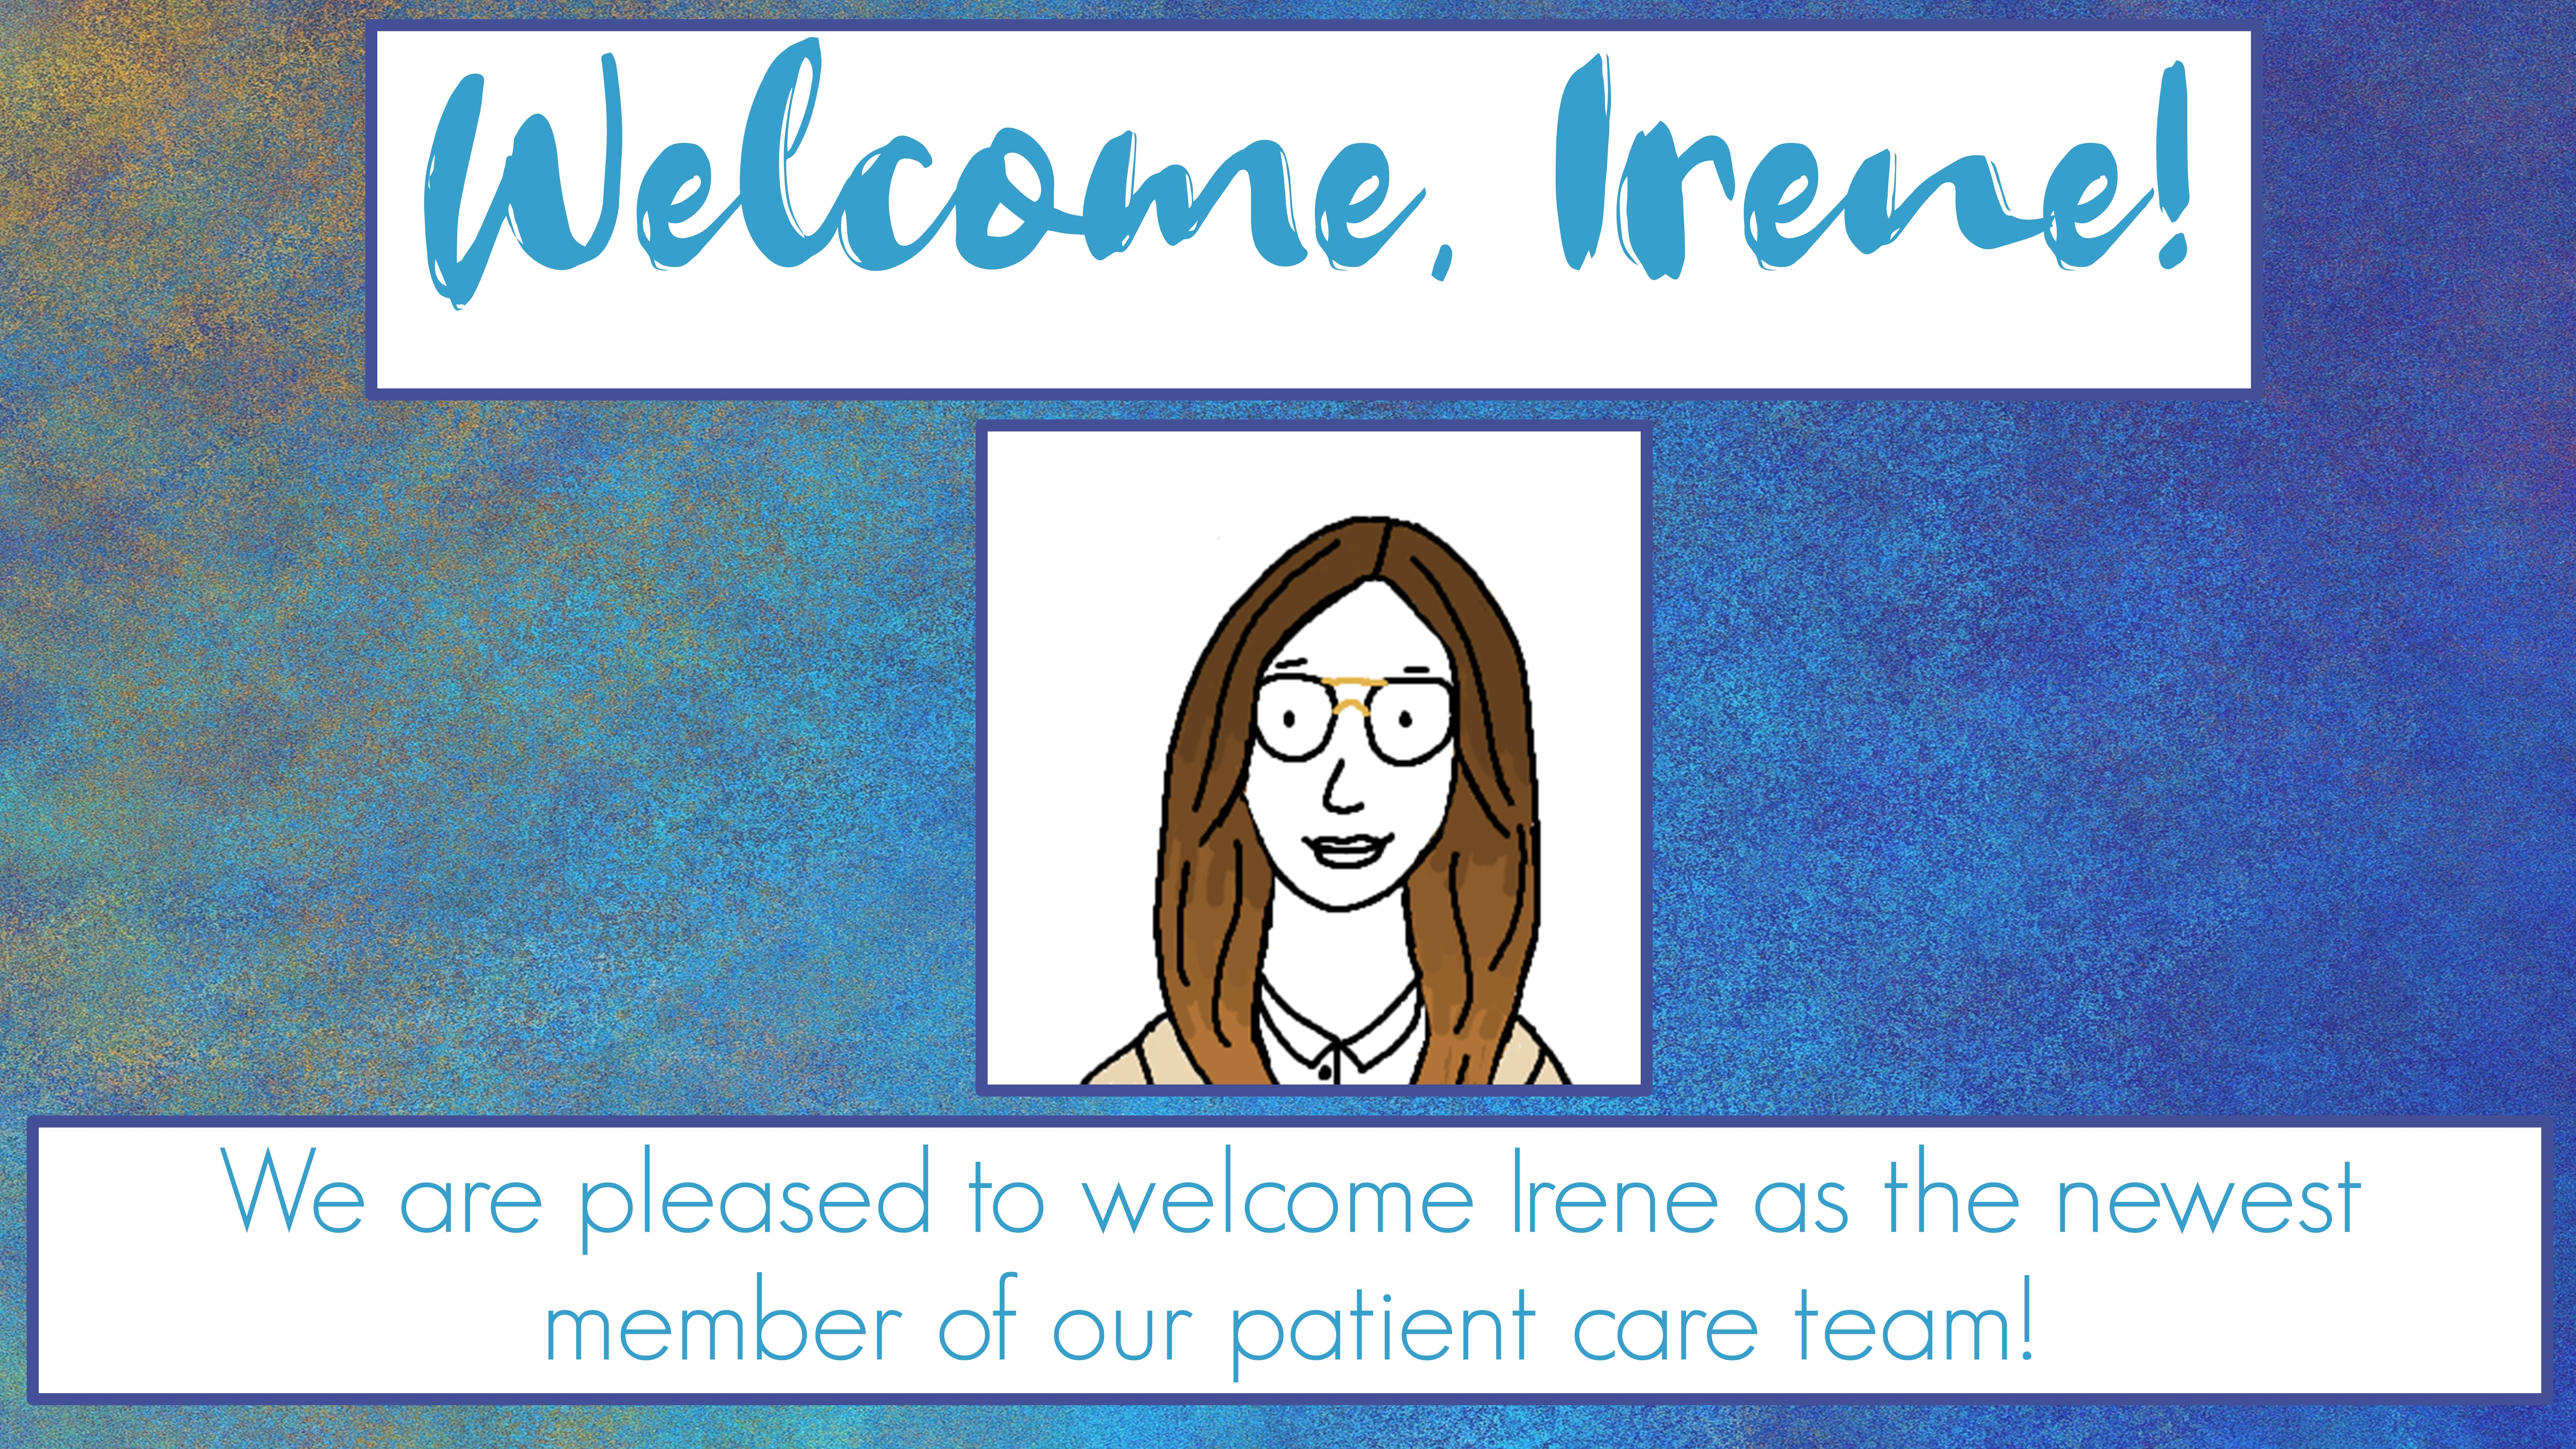 Blue and gold gradient background with a cartoon-style drawing in the centre depicting Irene, who has long, brown hair and is wearing black-framed aviator-style glasses with a double gold bridge, a white, collared shirt, and a beige blazer. Text reads Welcome, Irene! We are pleased to welcome Irene as the newest member of our patient care team!